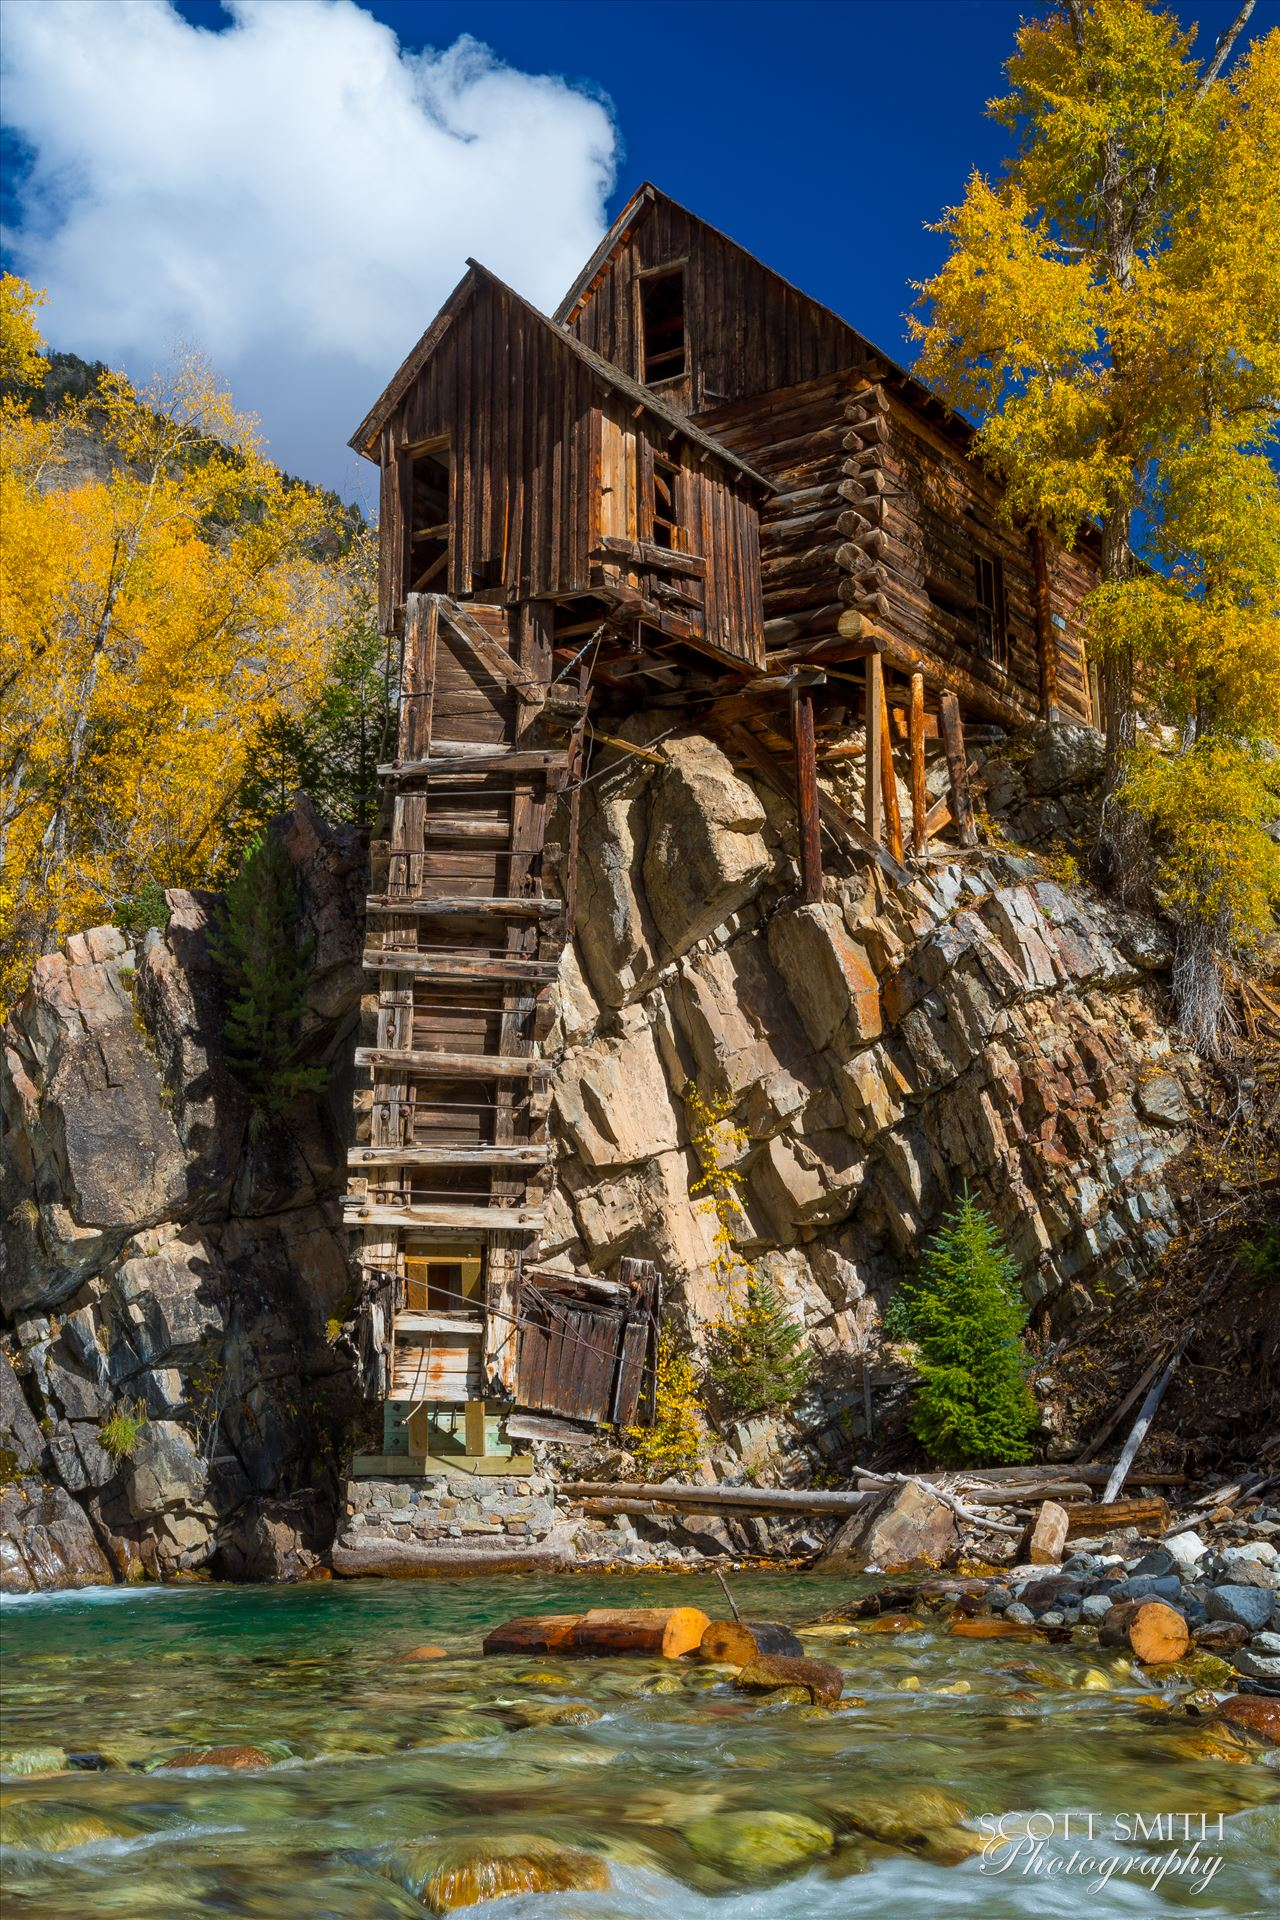 Crystal Mill, Colorado 06 - The Crystal Mill, or the Old Mill is an 1892 wooden powerhouse located on an outcrop above the Crystal River in Crystal, Colorado by D Scott Smith